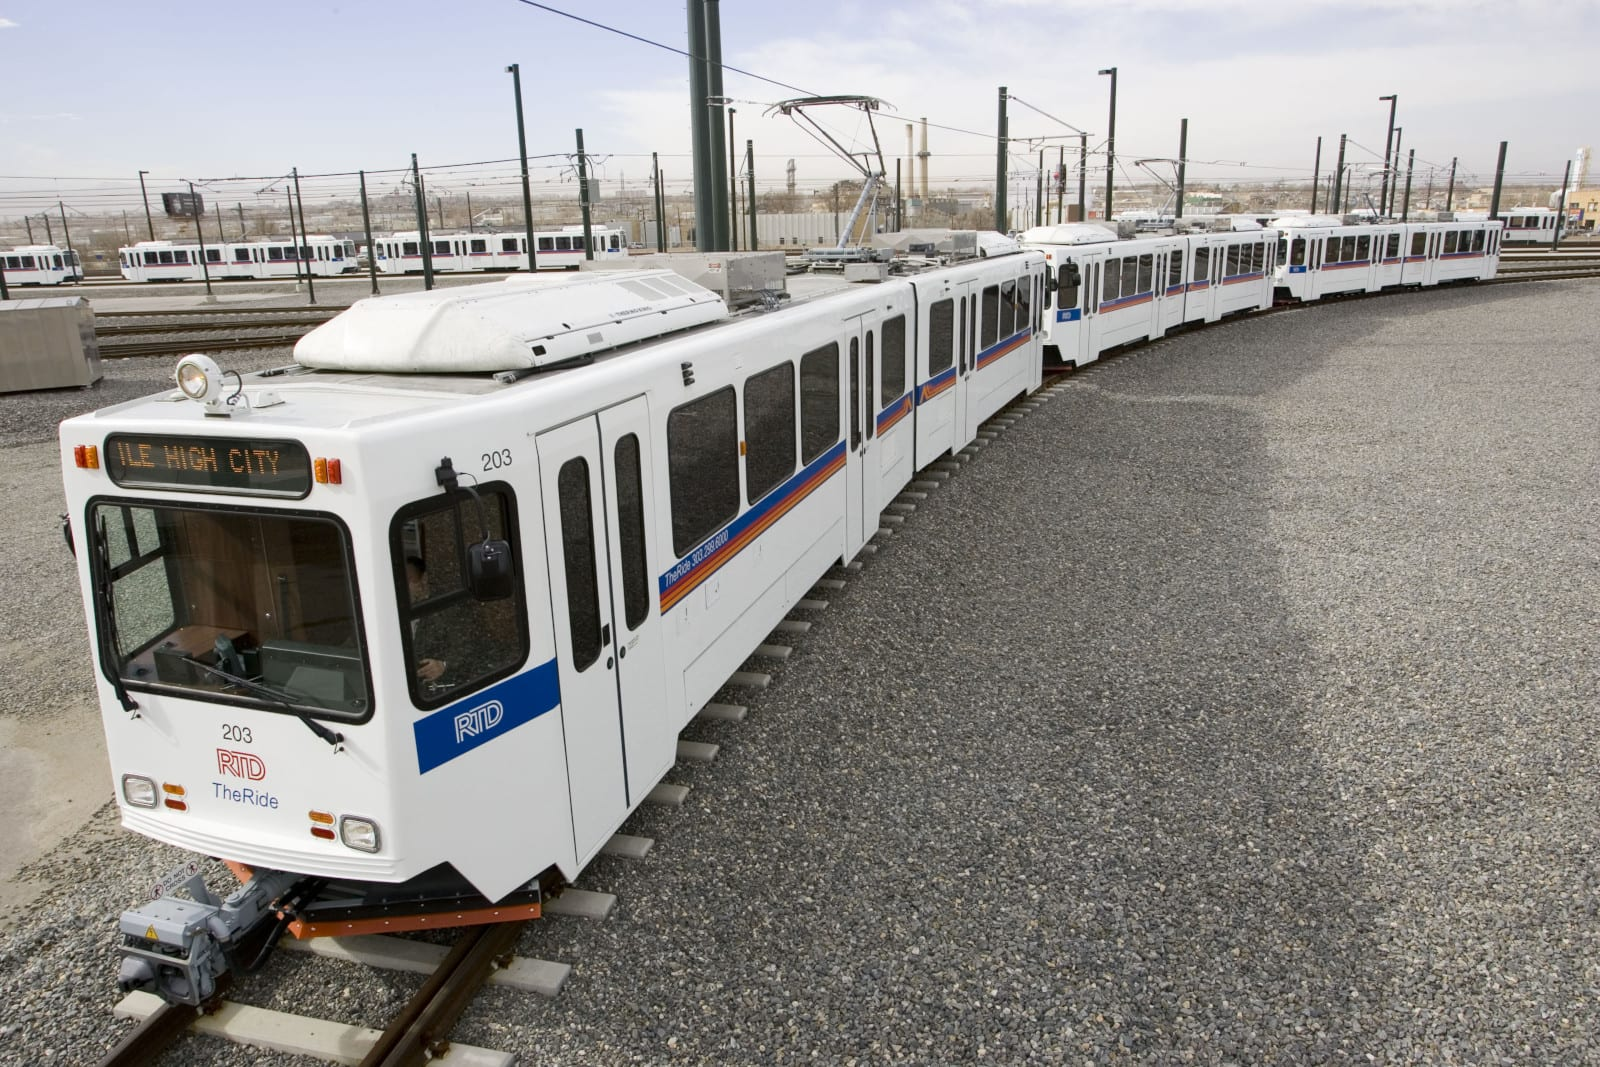 RTD Denver Mile High City Train